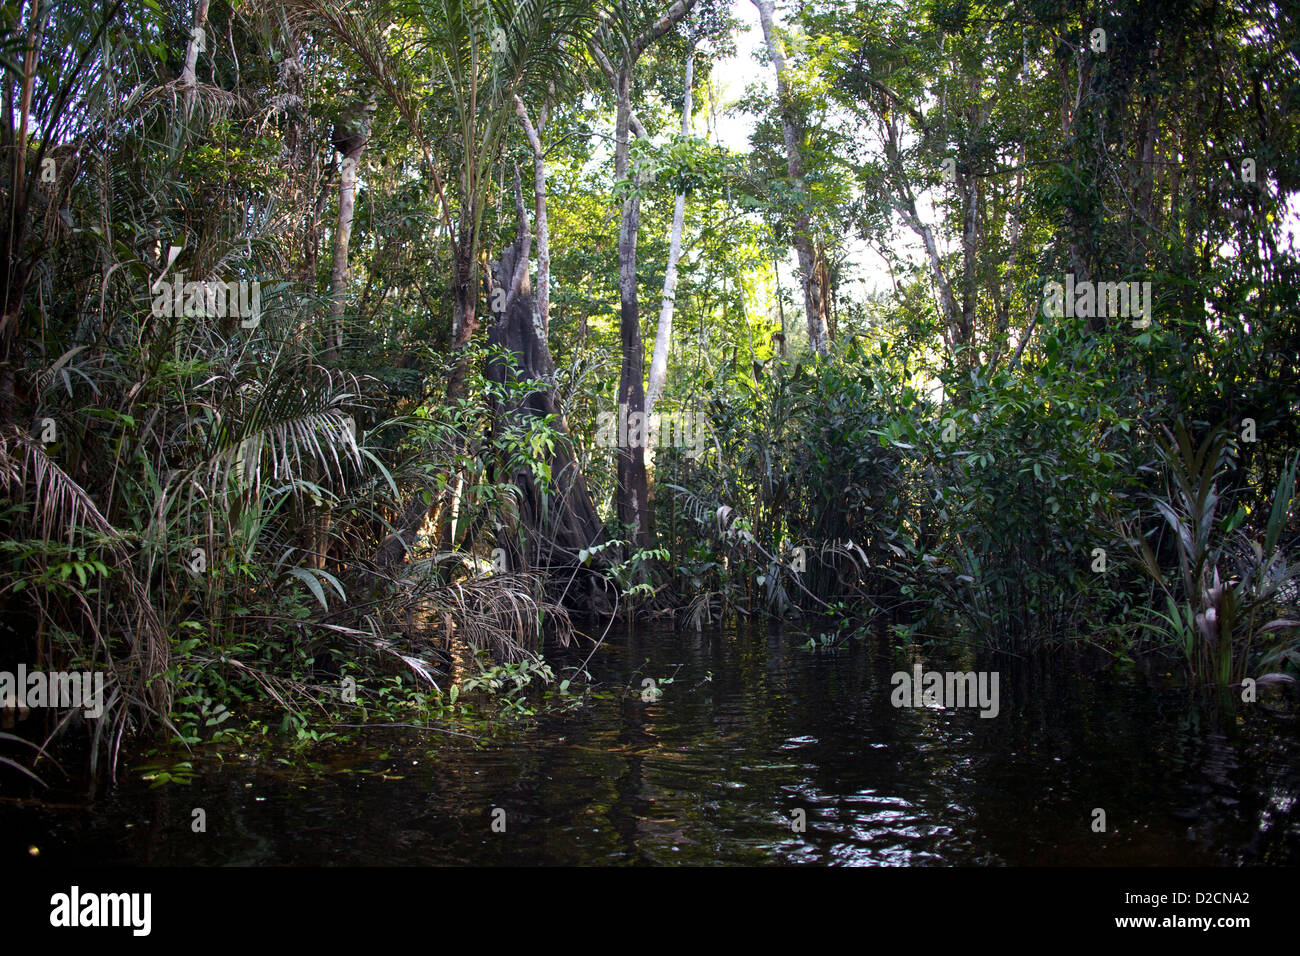 The Amazon jungle crowding up to the water's edge - Stock Image